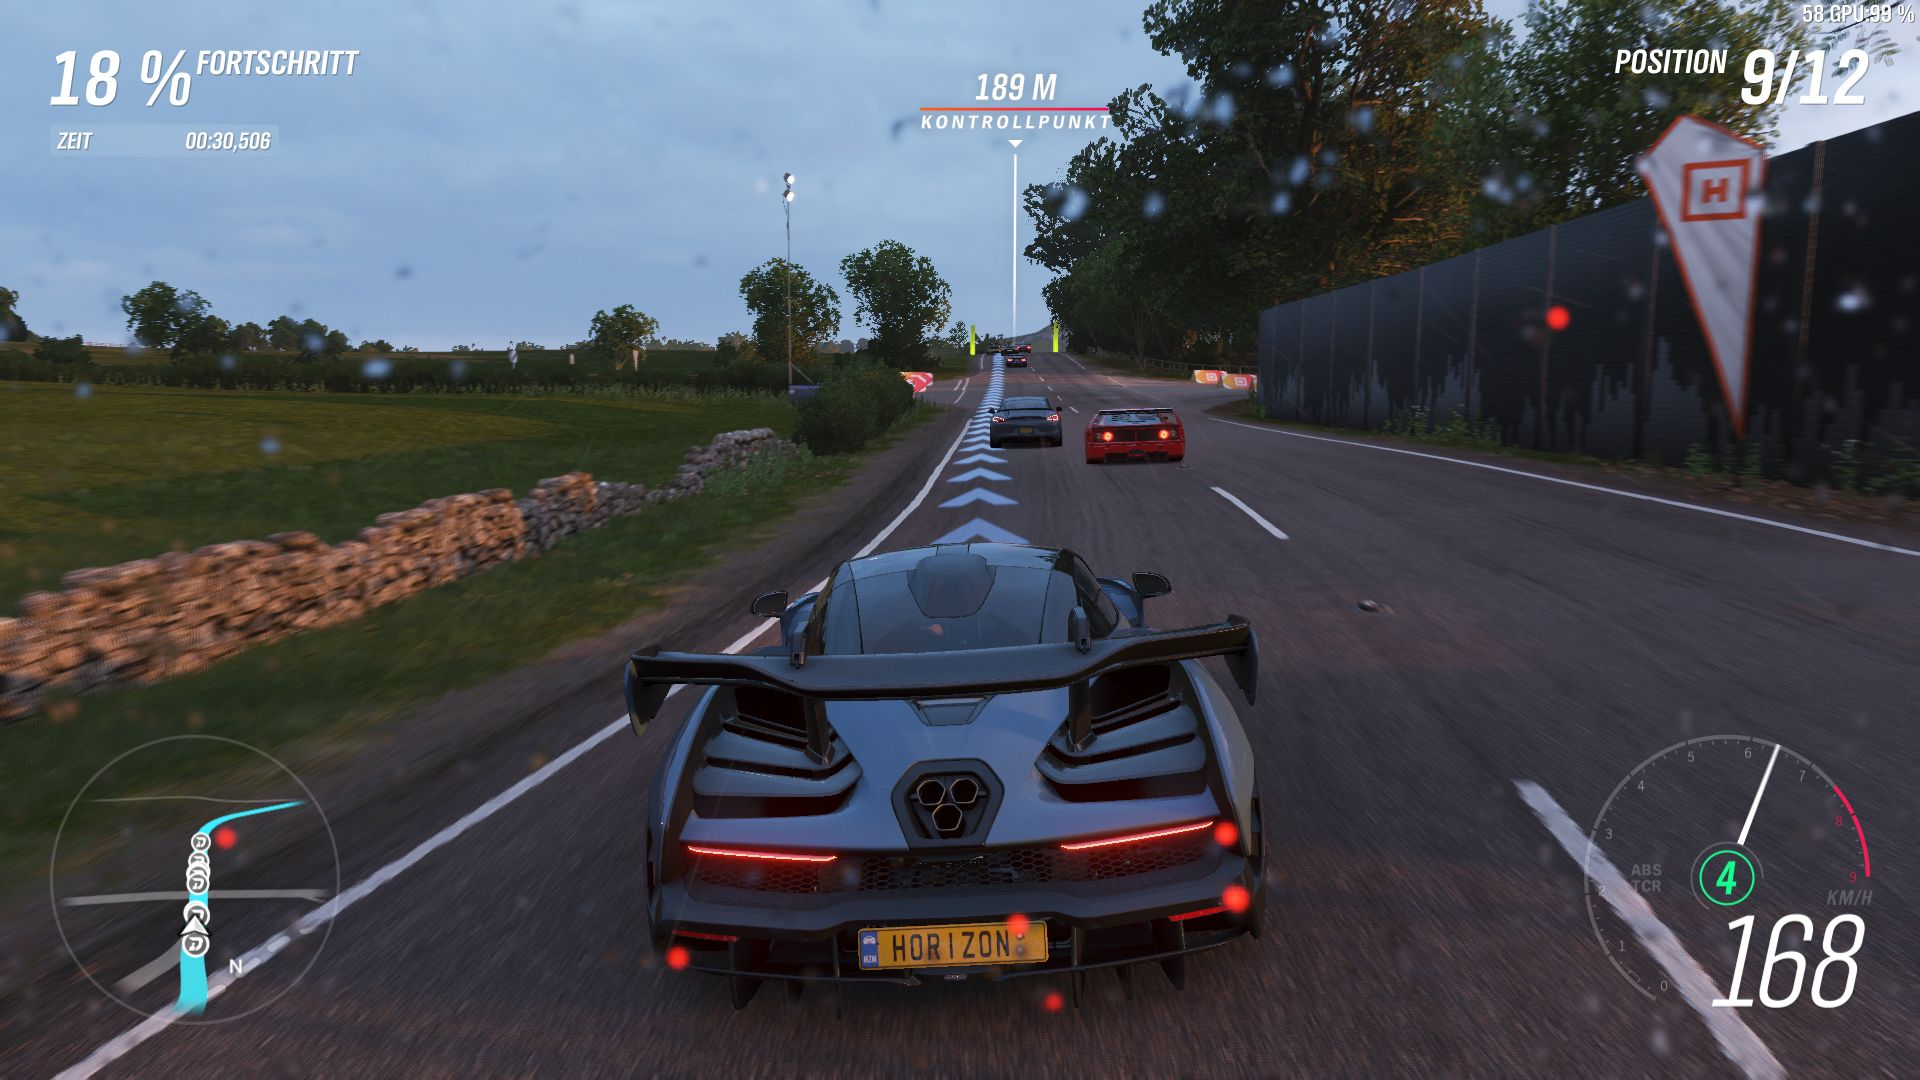 Forza Horizon 4 Notebook and Desktop Benchmarks